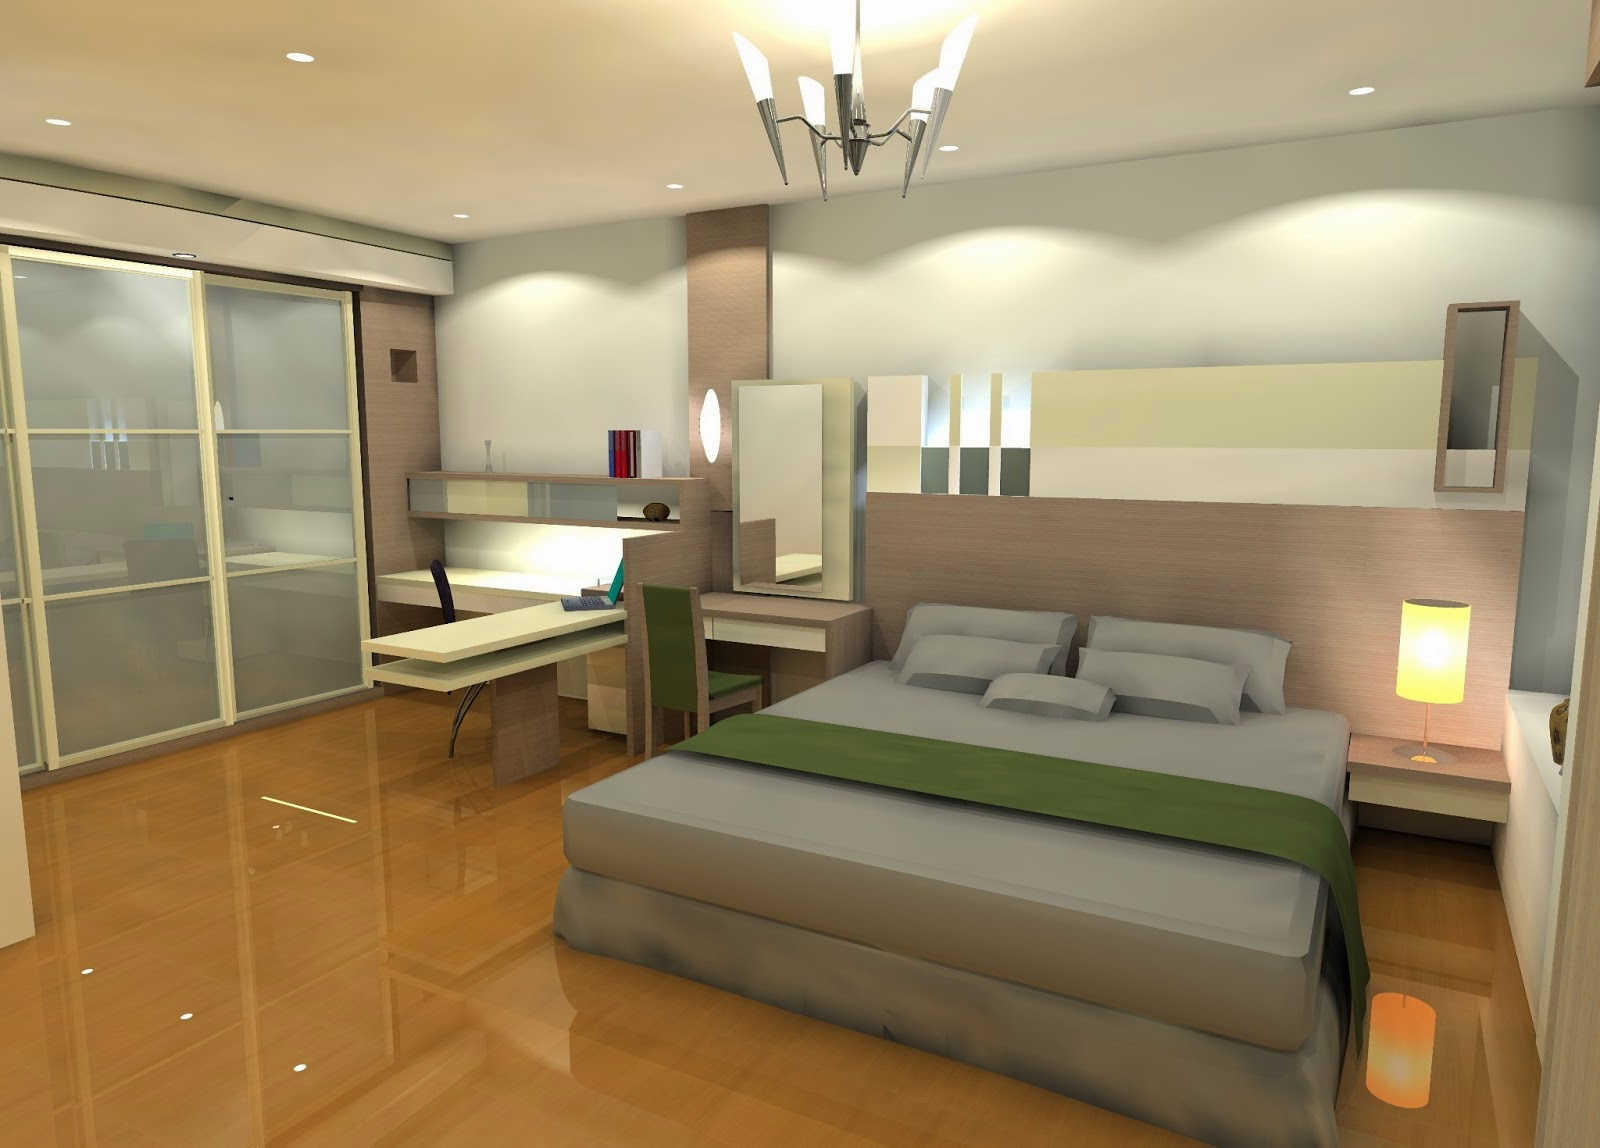 modern bedroom interior design 2015 home inspirations 12529 | modern 2bbedroom 2binterior 2bdesign 2b2015 5